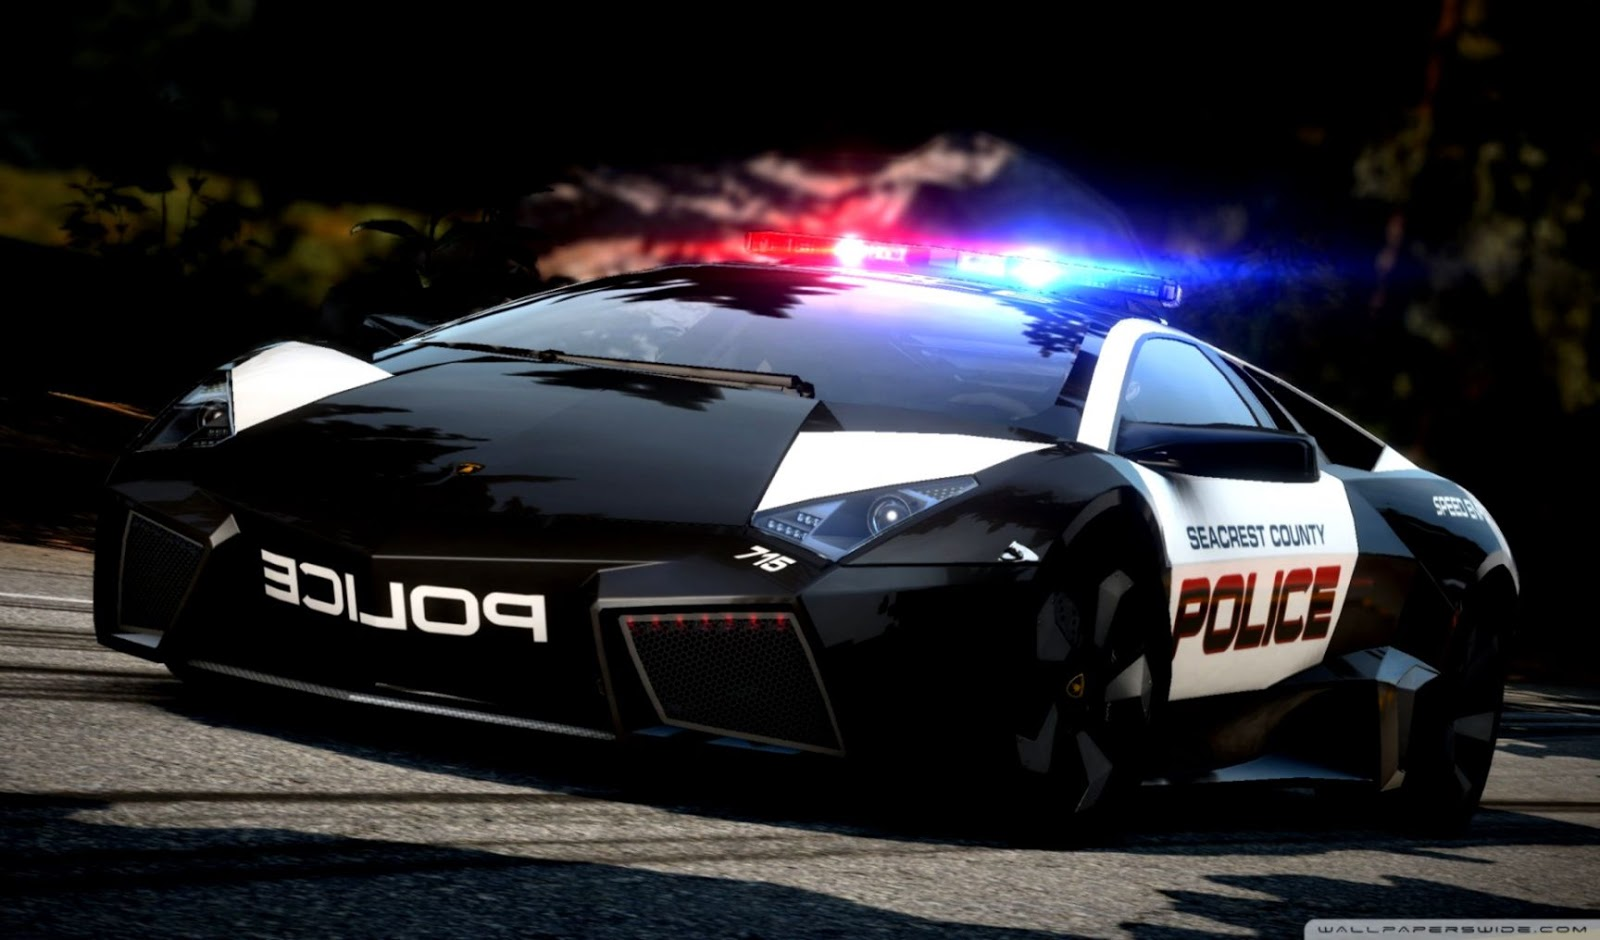 Cool police cars wallpaper wallpapers image